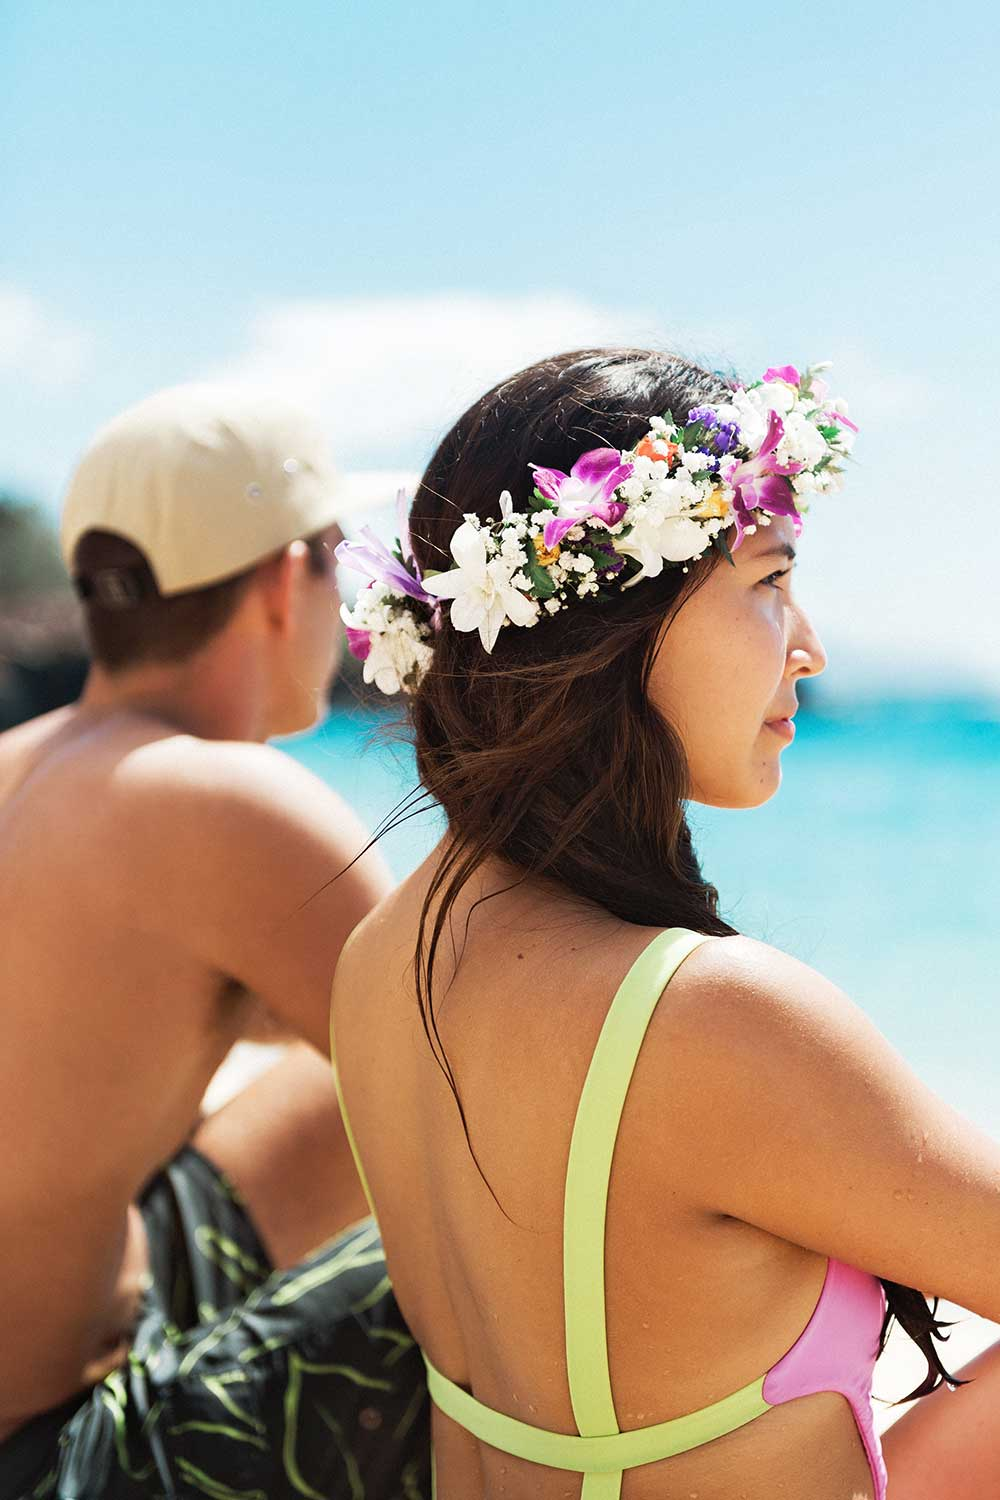 Woman with lei in hair and man sitting near ocean